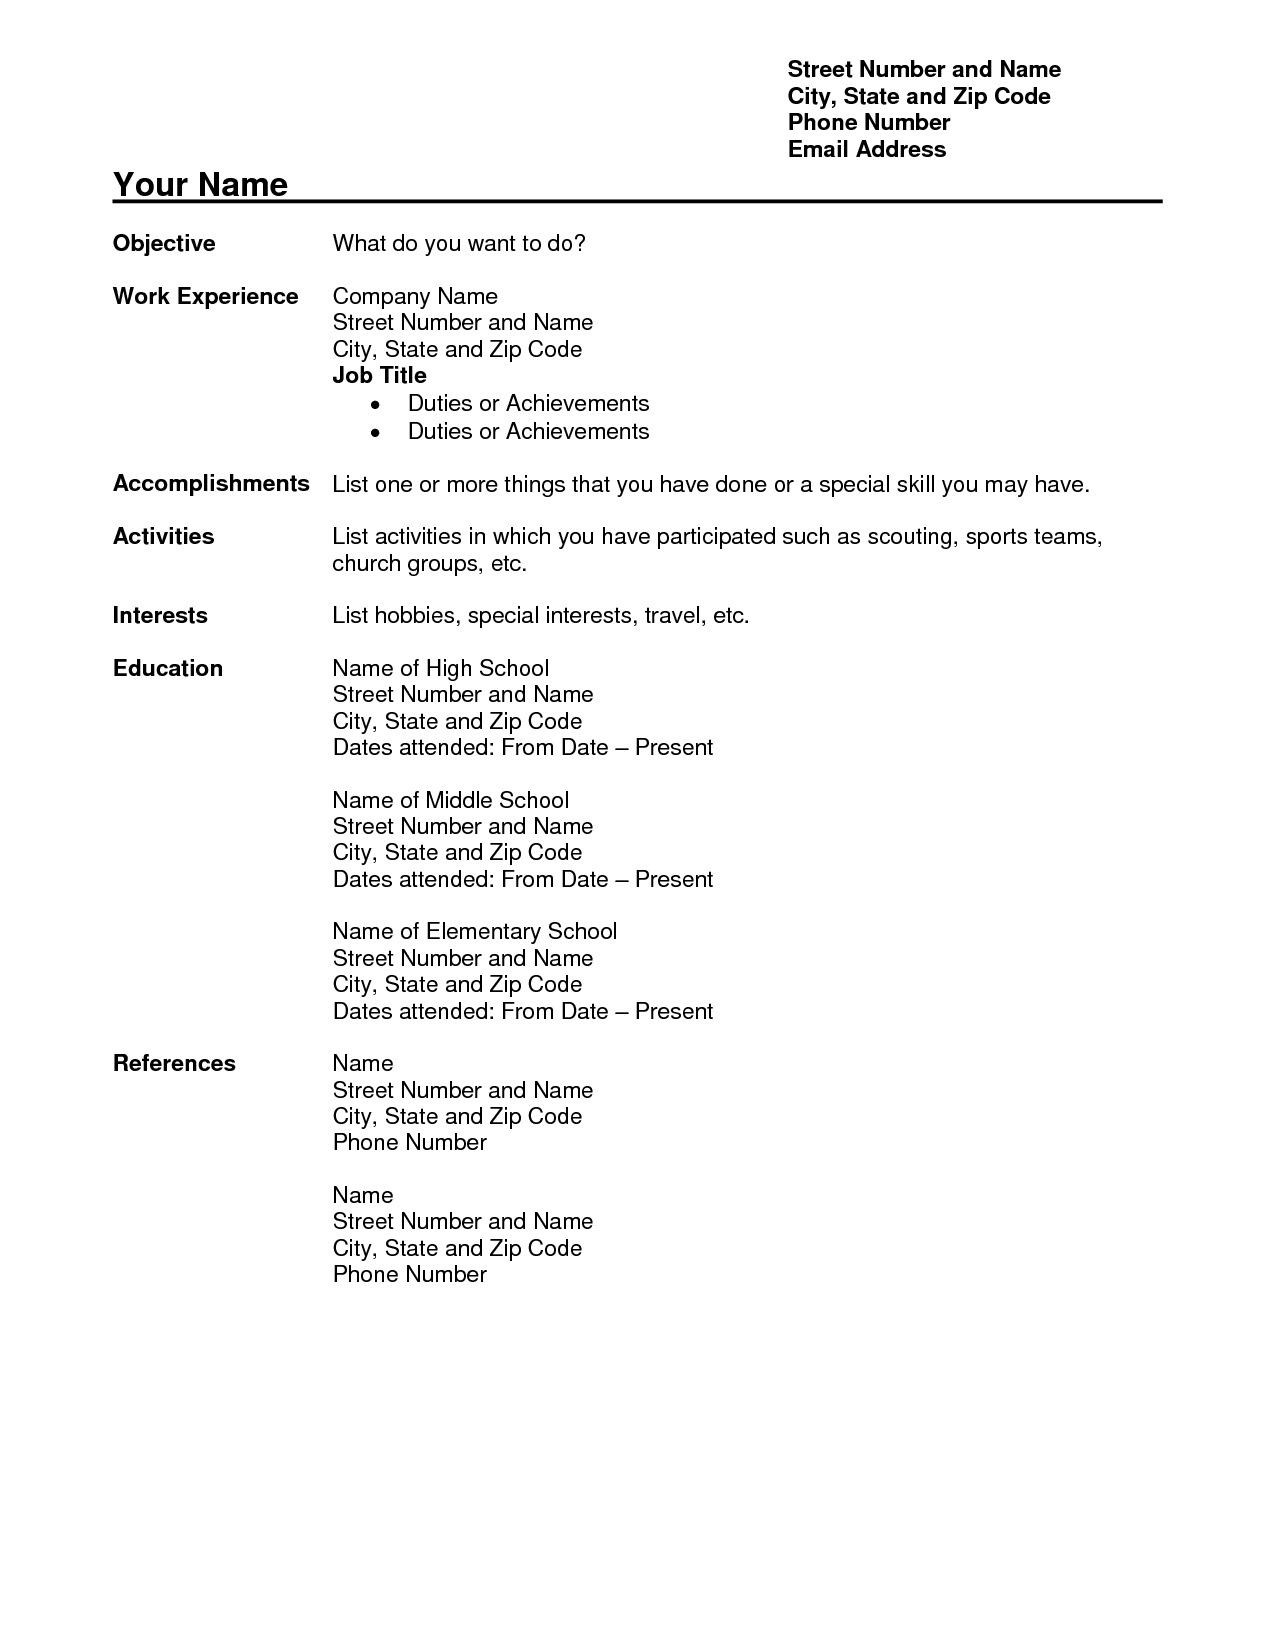 Free Teacher Resume Templates Download Free Teacher Resume Templates  Download, Free Teacher Resume Templates Microsoft  Free Resume Templates To Download And Print